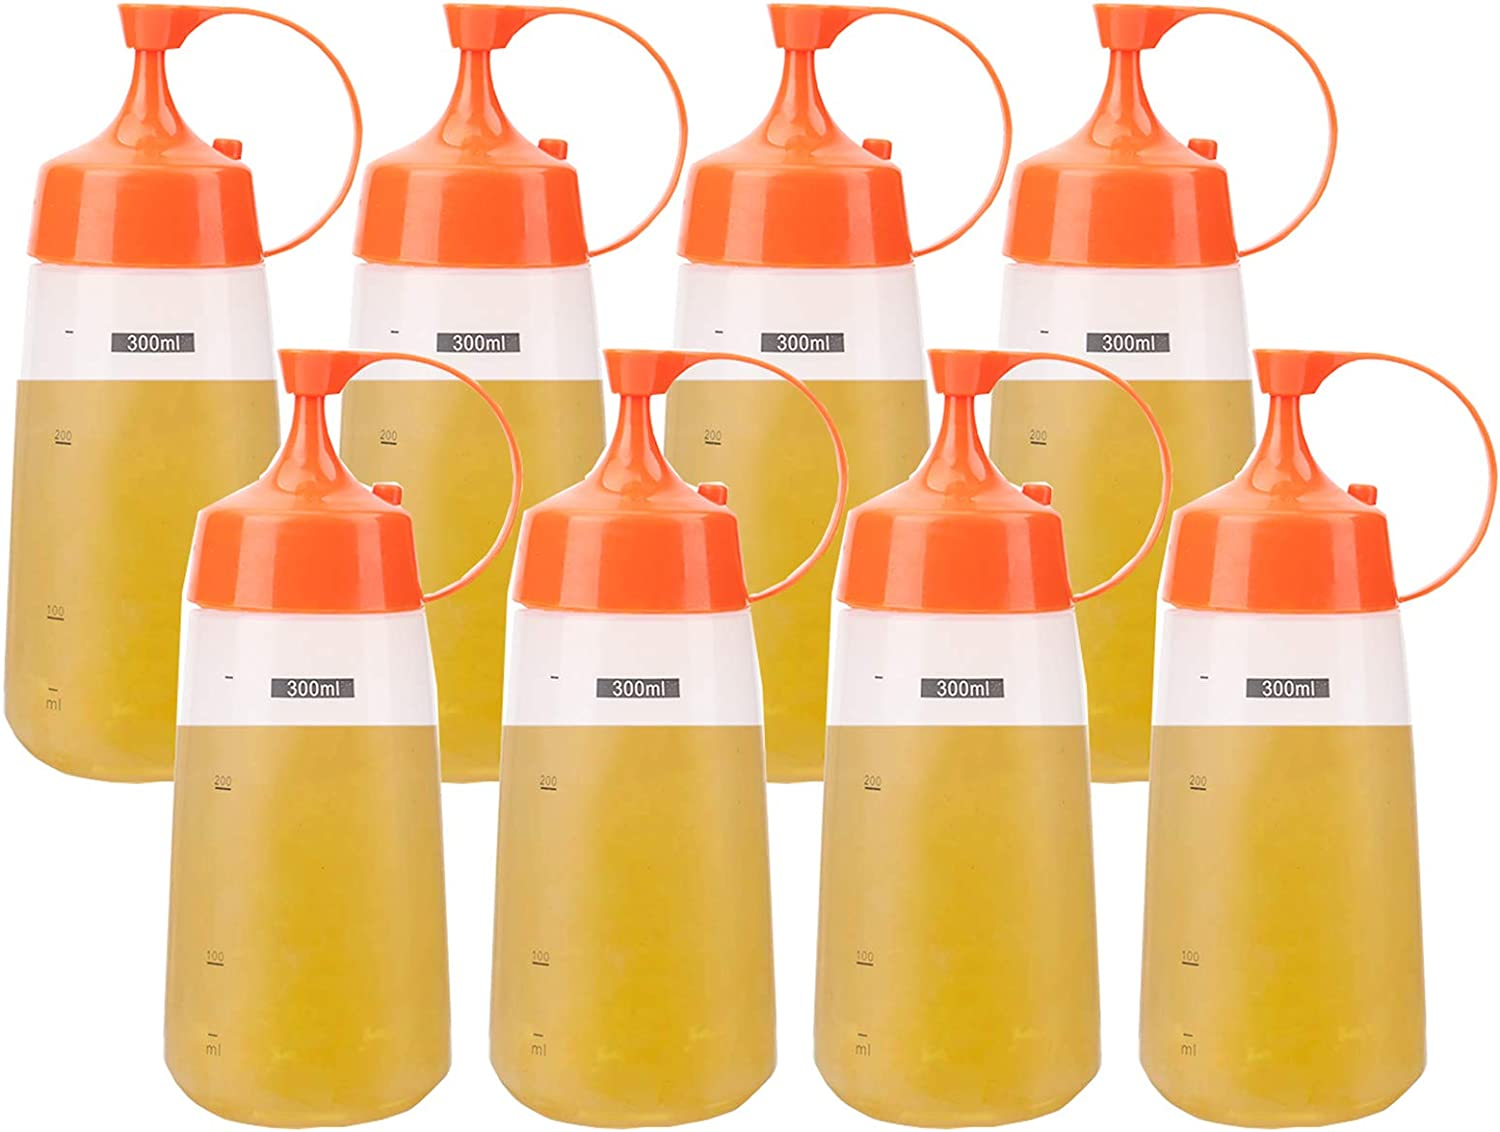 Lawei 8 Pack 10 oz Plastic Squeeze Condiment Bottles - Plastic Sauce Bottles with Cap Lids and Measurements, Squirt Bottles for Ketchup, BBQ, Sauces, Syrup, Dressings and more